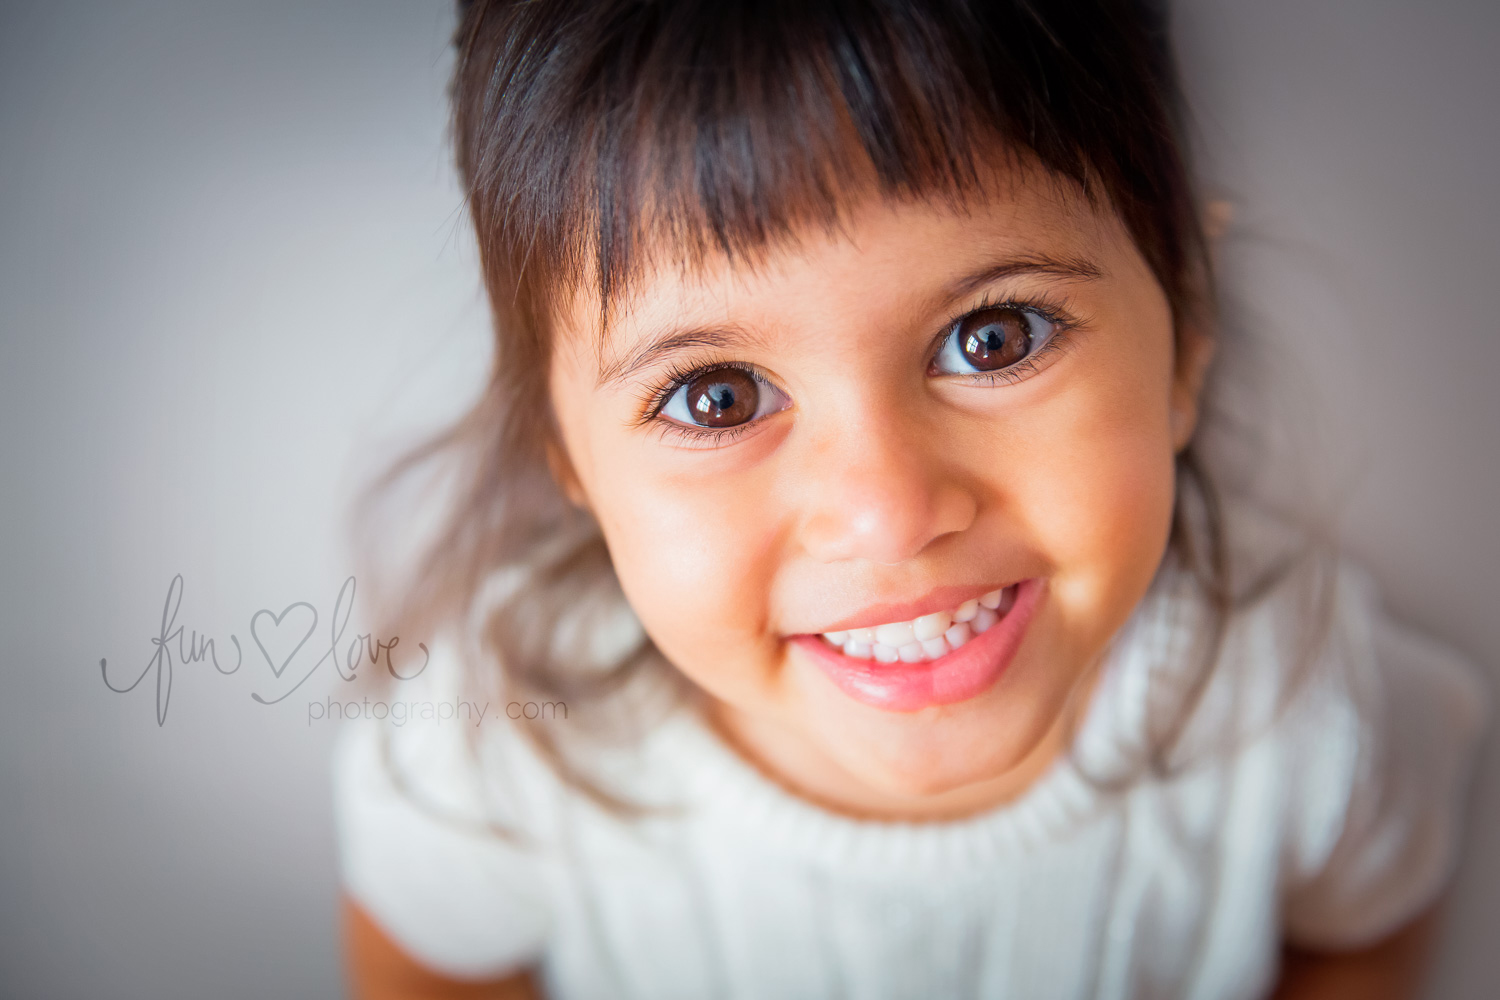 Tilt your child's gaze slightly upward to make sure there are catchlights in the eyes.